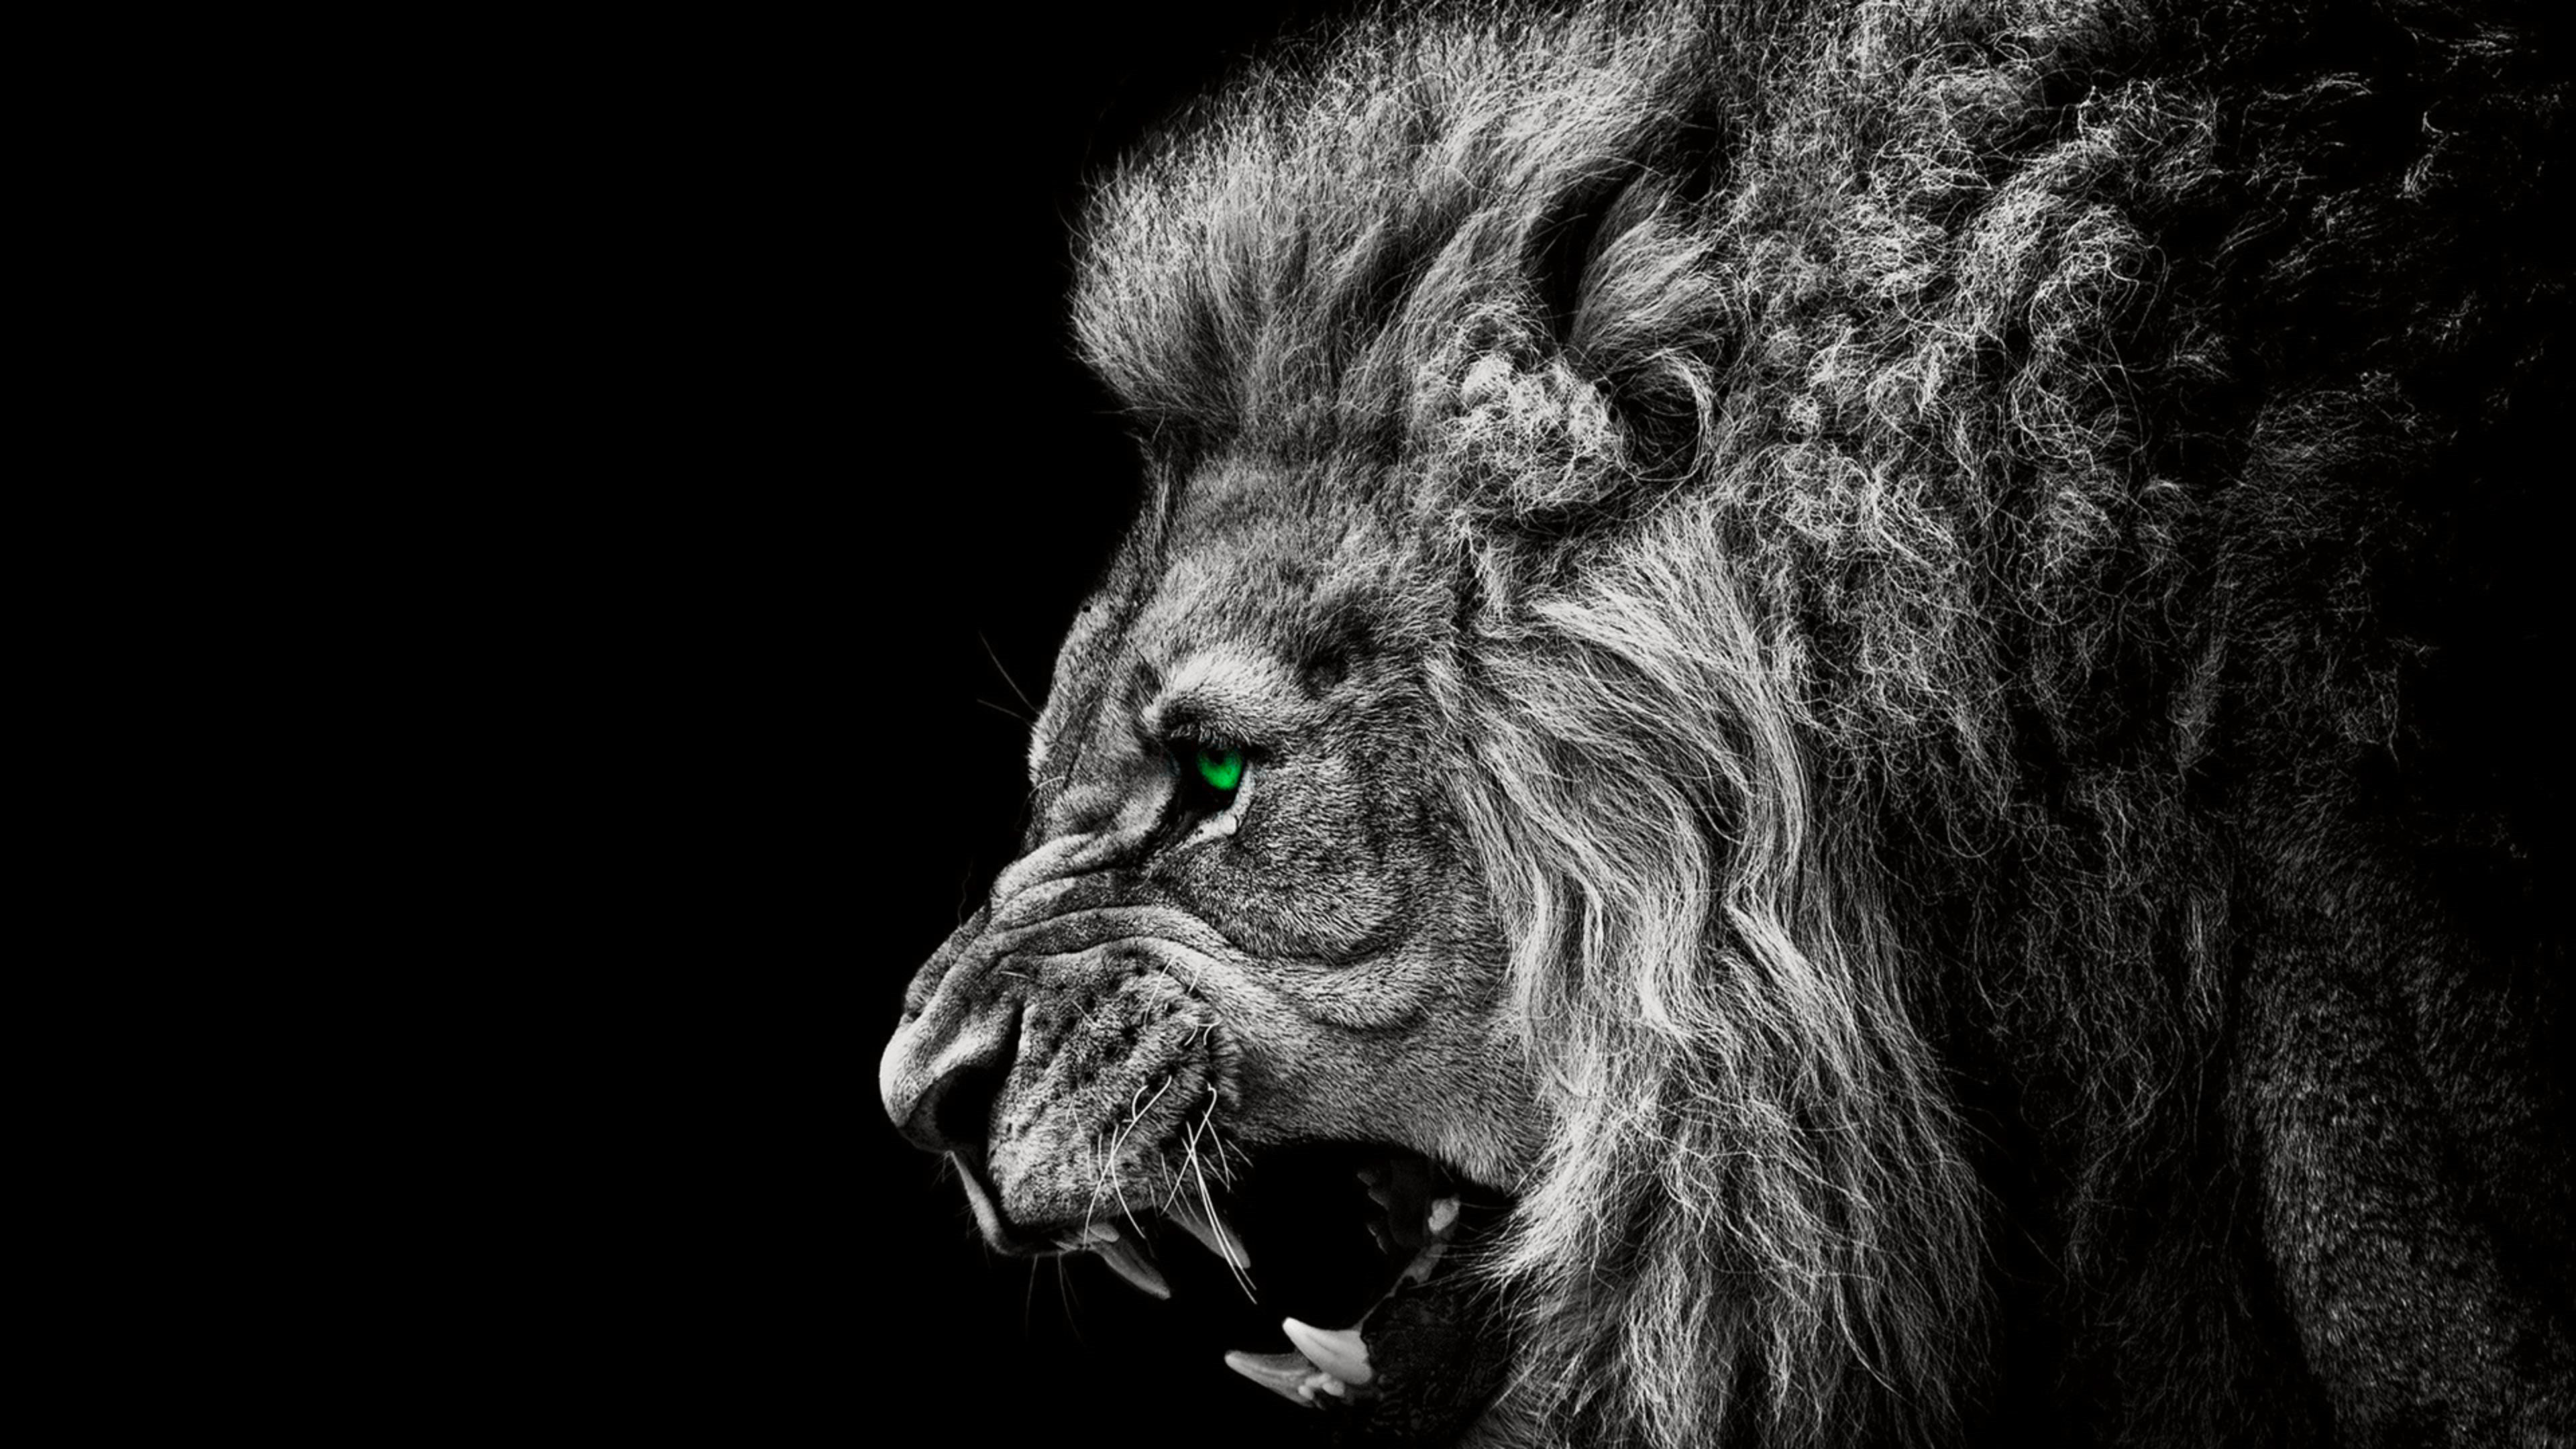 3840x2160 Explore Lion Wallpaper, Roaring Lion, and more!